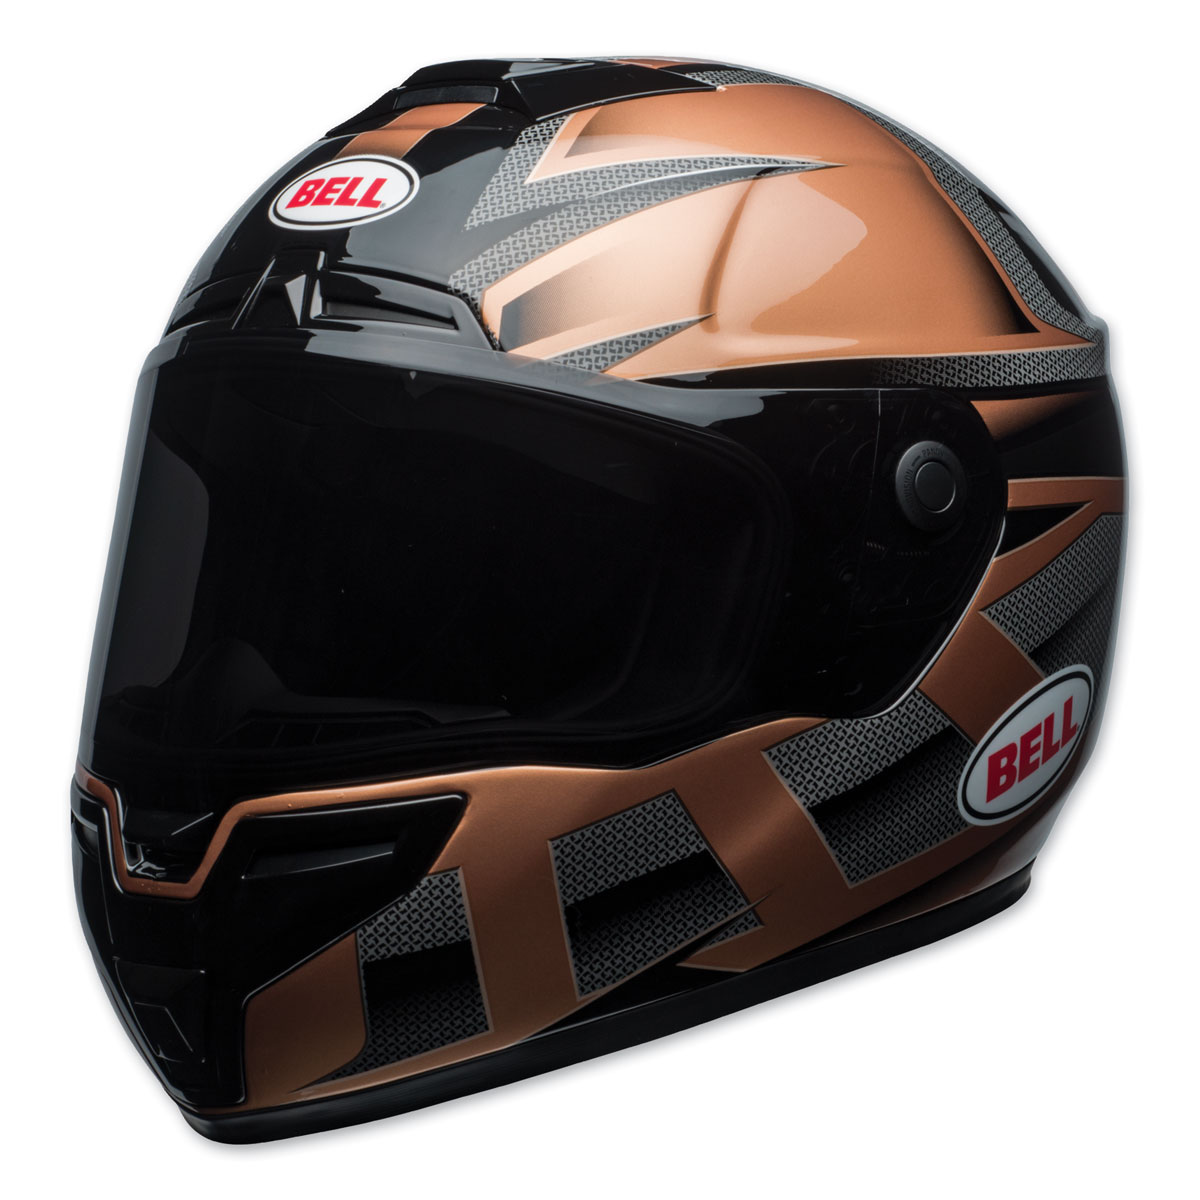 Bell SRT Predator Gloss Copper/Black Full Face Helmet